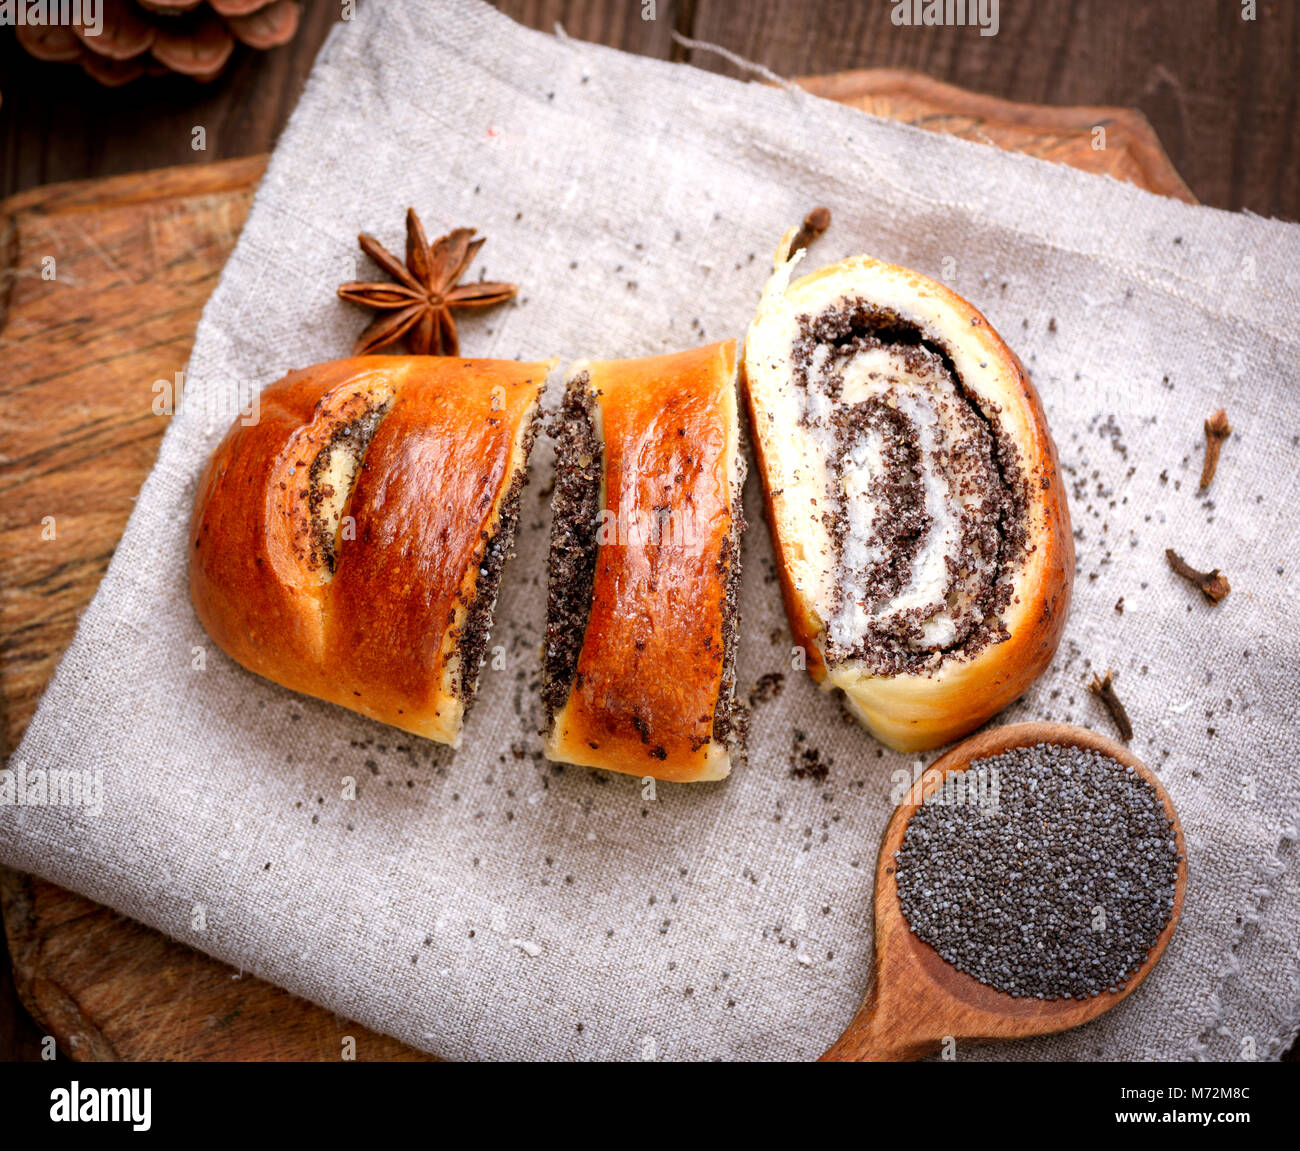 baked roll with poppy seeds on a wooden board, top view - Stock Image